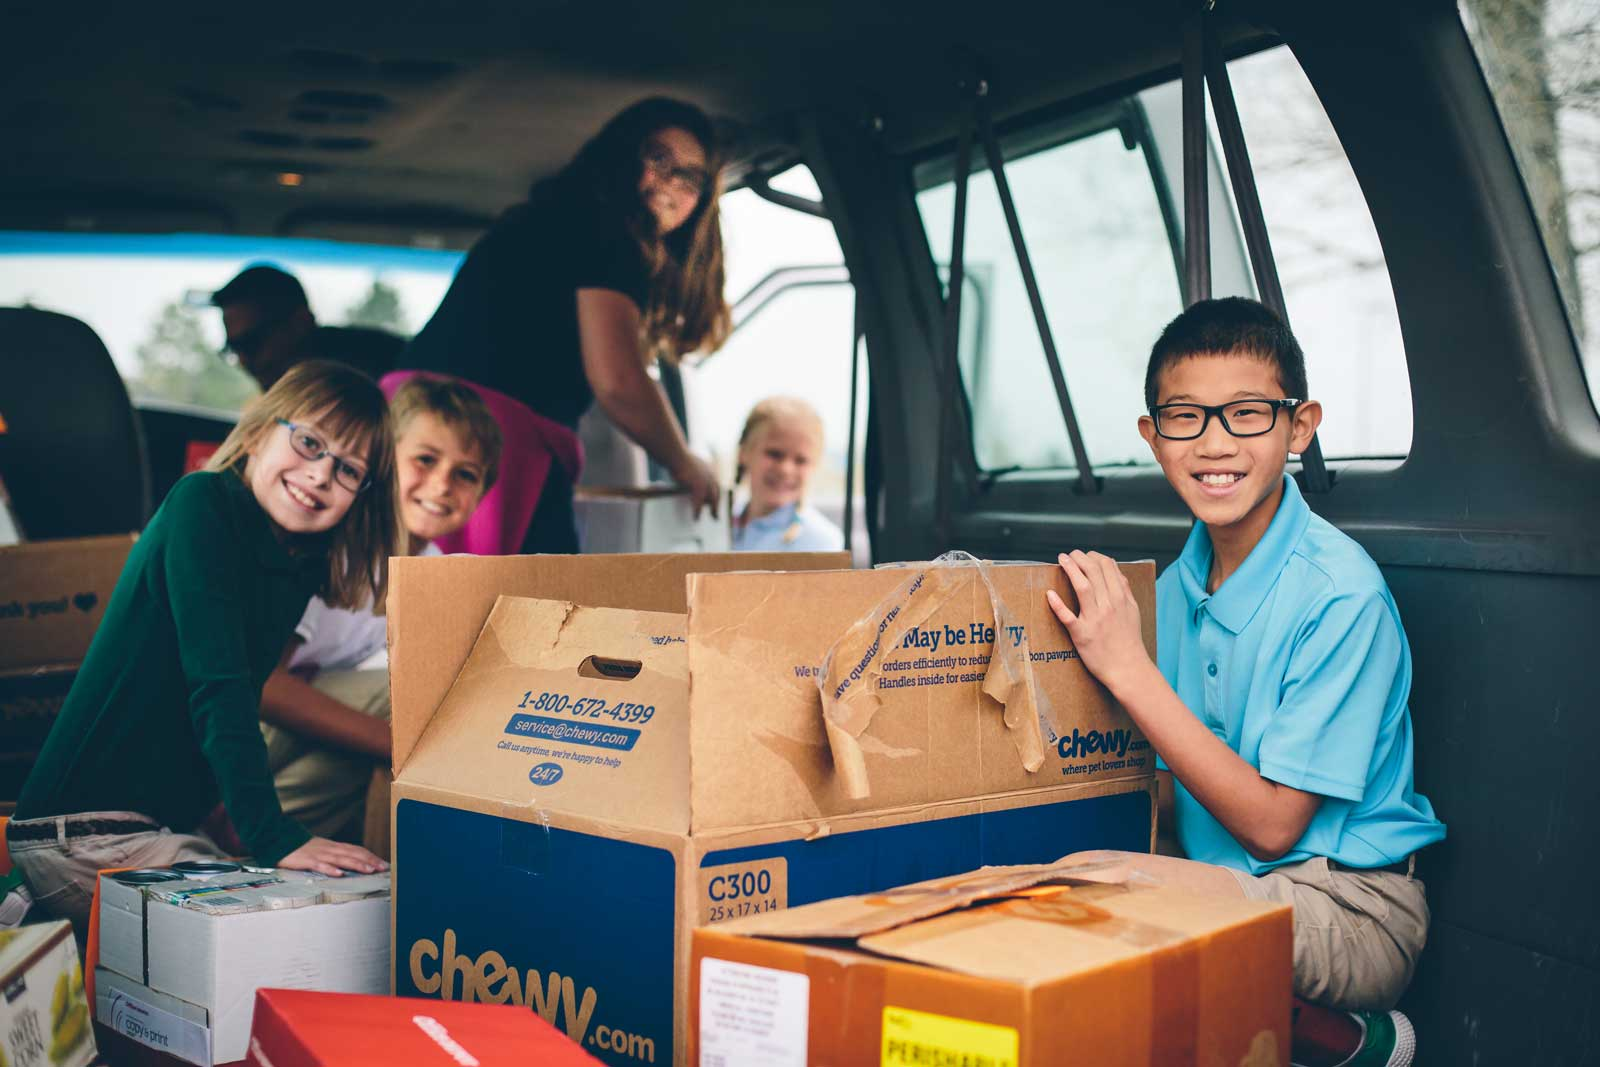 Kids loading a van with donated food items